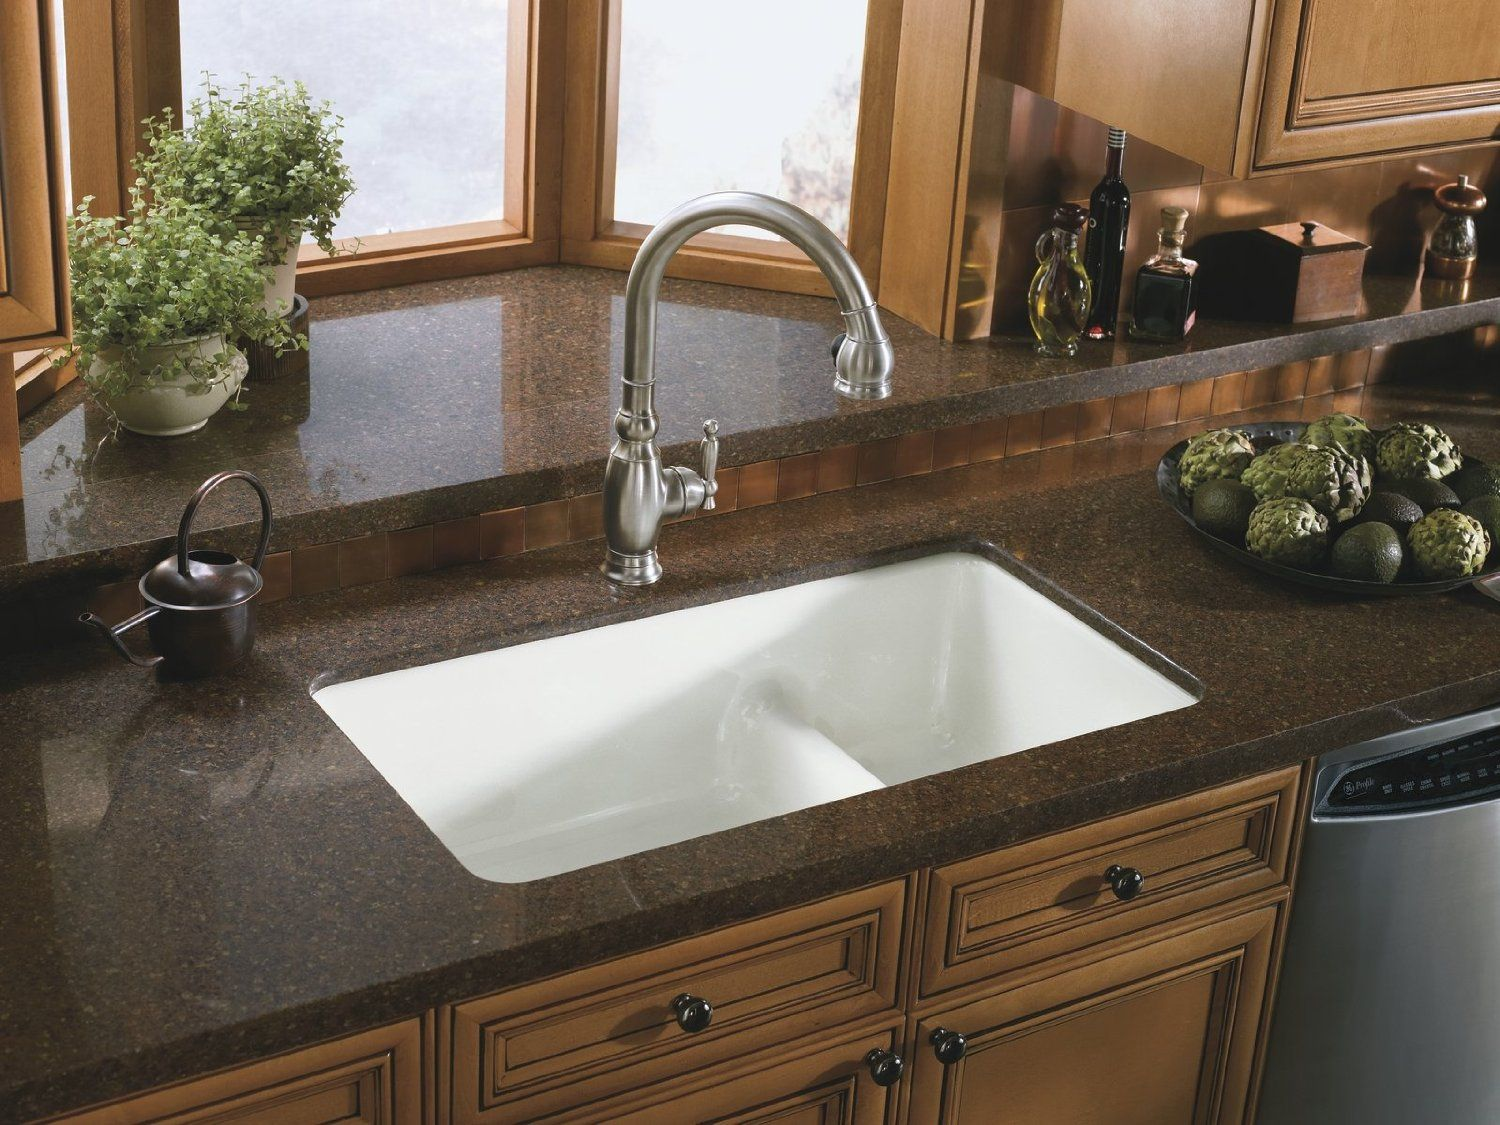 Dark Brown Granite Kitchen Countertop Combined With Ceramic White Undermount Sink Granite Countertop With Sink Combination Options Cast Iron Kitchen Sinks Sink Countertop Undermount Kitchen Sinks